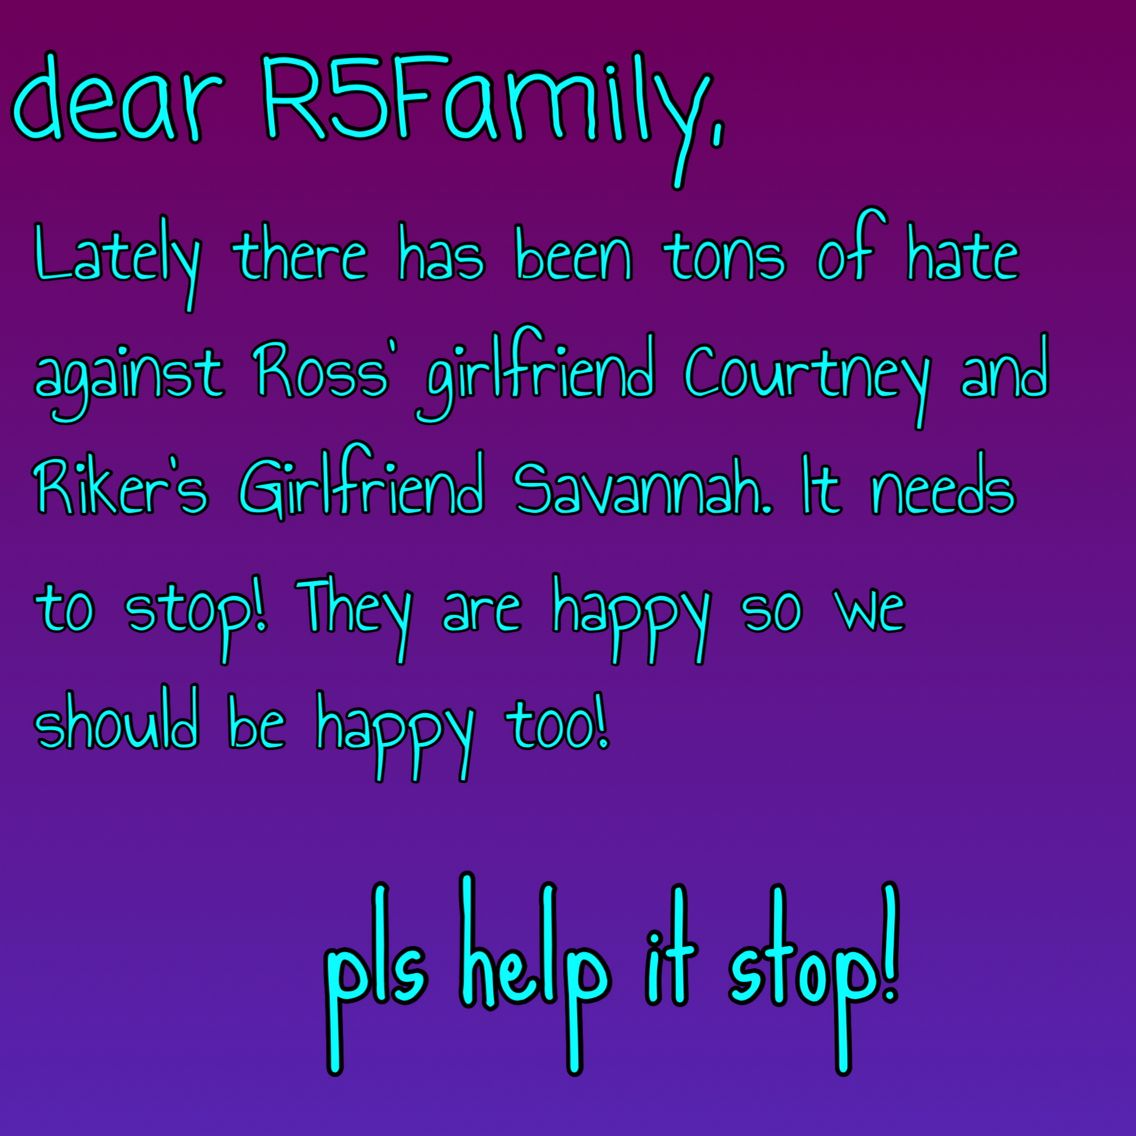 Help it stop R5 family!